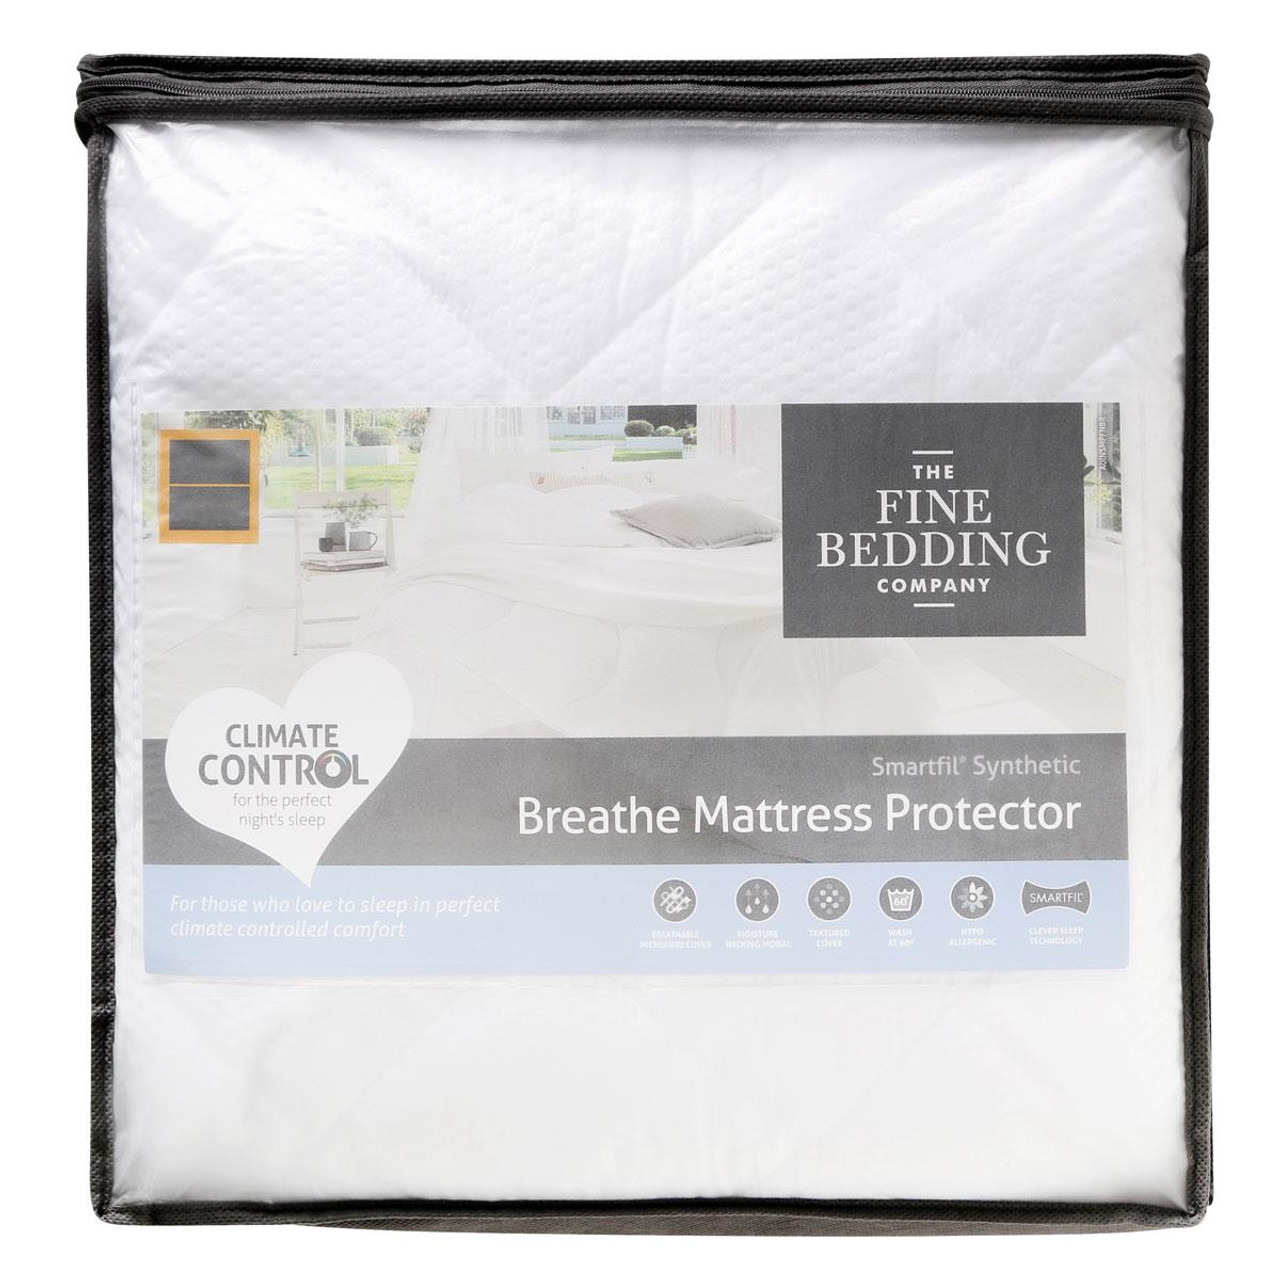 The Fine Bedding Company Breathe Mattress Protector packaging